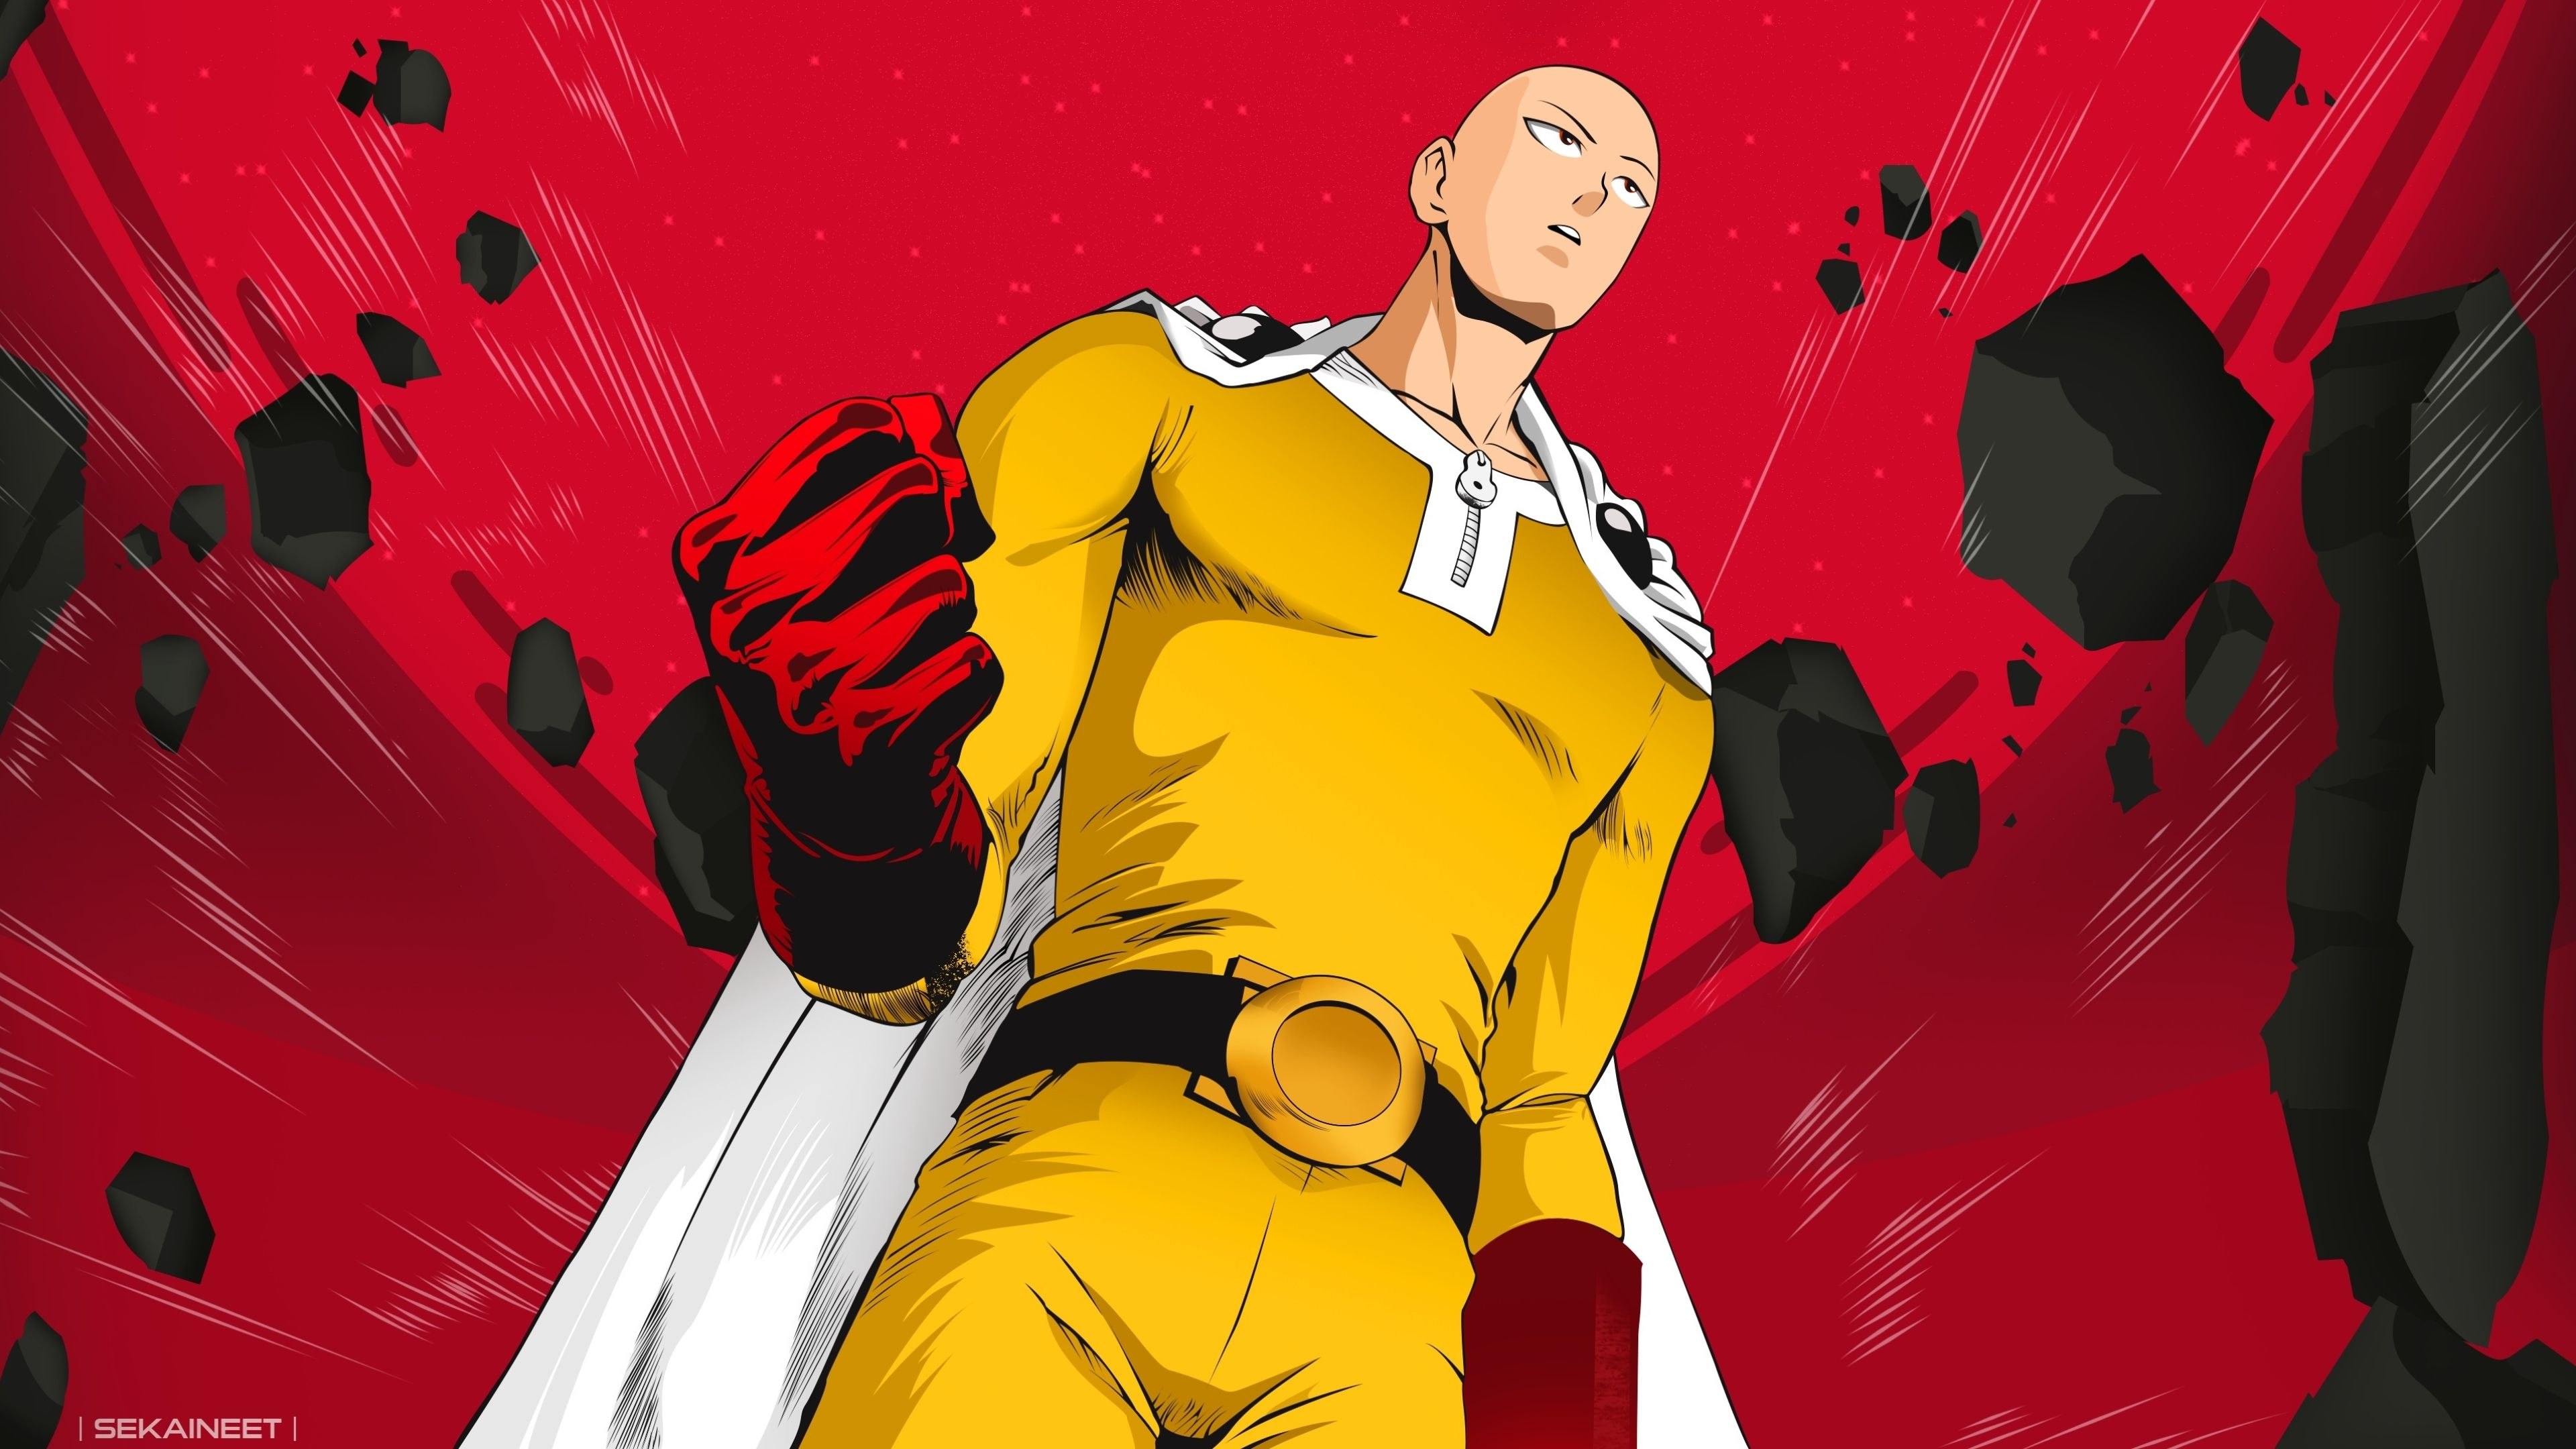 One Punch Man Desktop Wallpaper 4k If You Have Your Own One Just Send Us The Image And We Will Show It On The Web Site Ultra Hd Wallpaper 4k Genos And